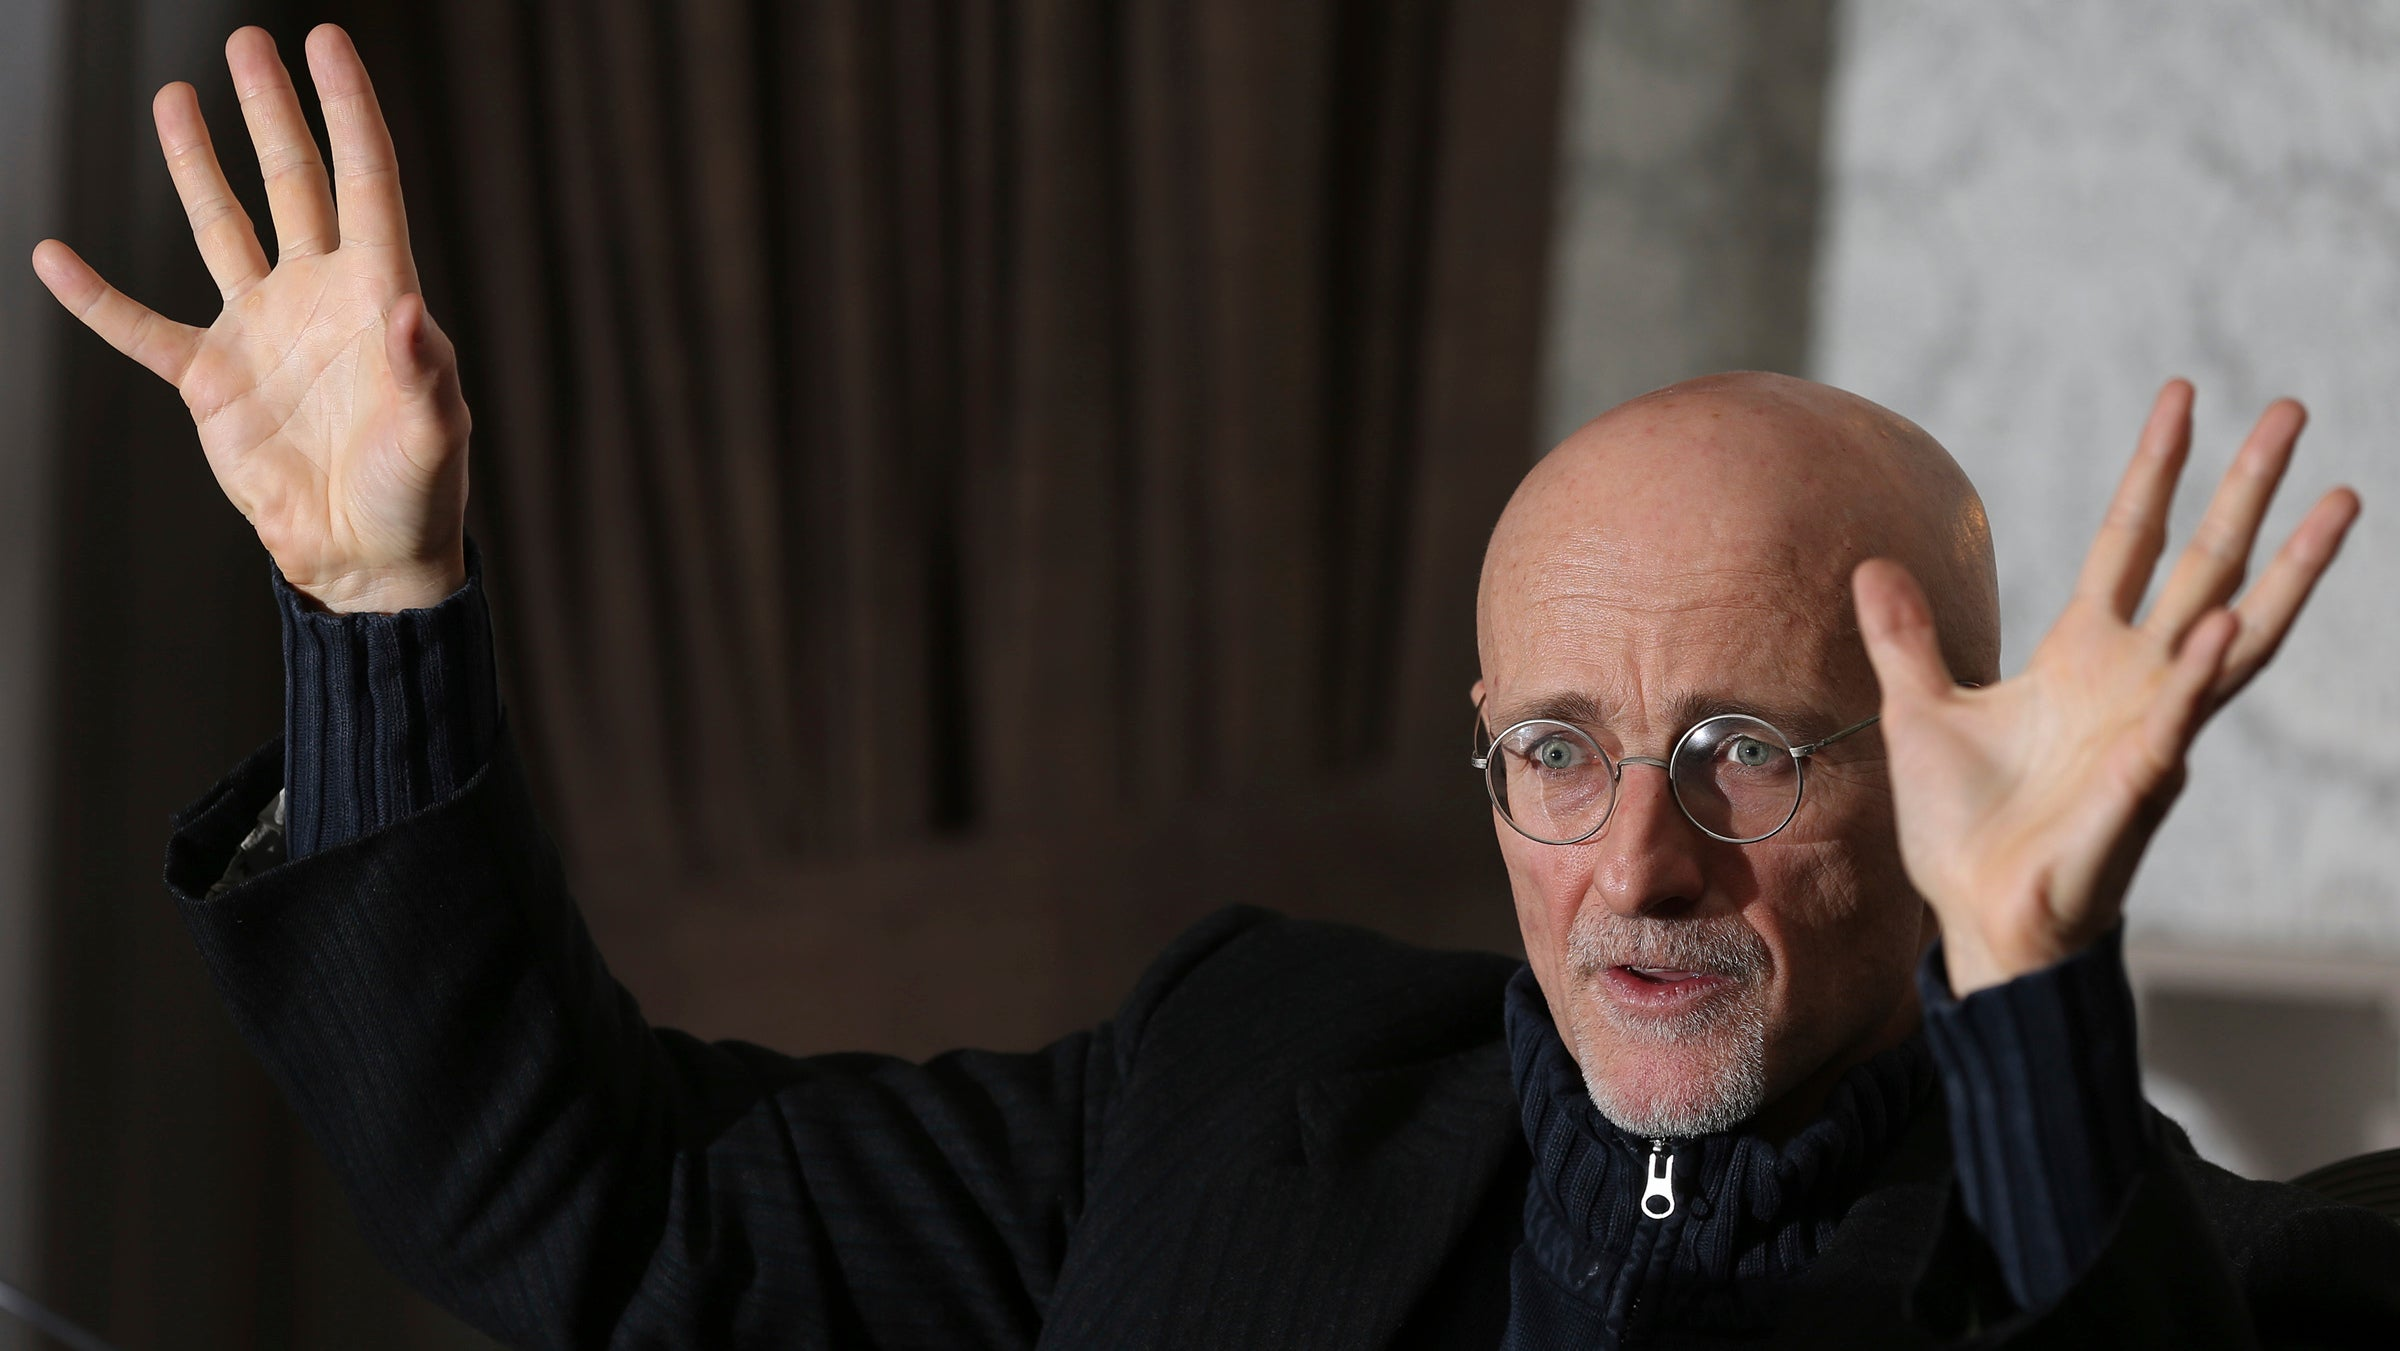 Head Transplant Doctor Claims First Successful Human Head Transplant… On A Corpse